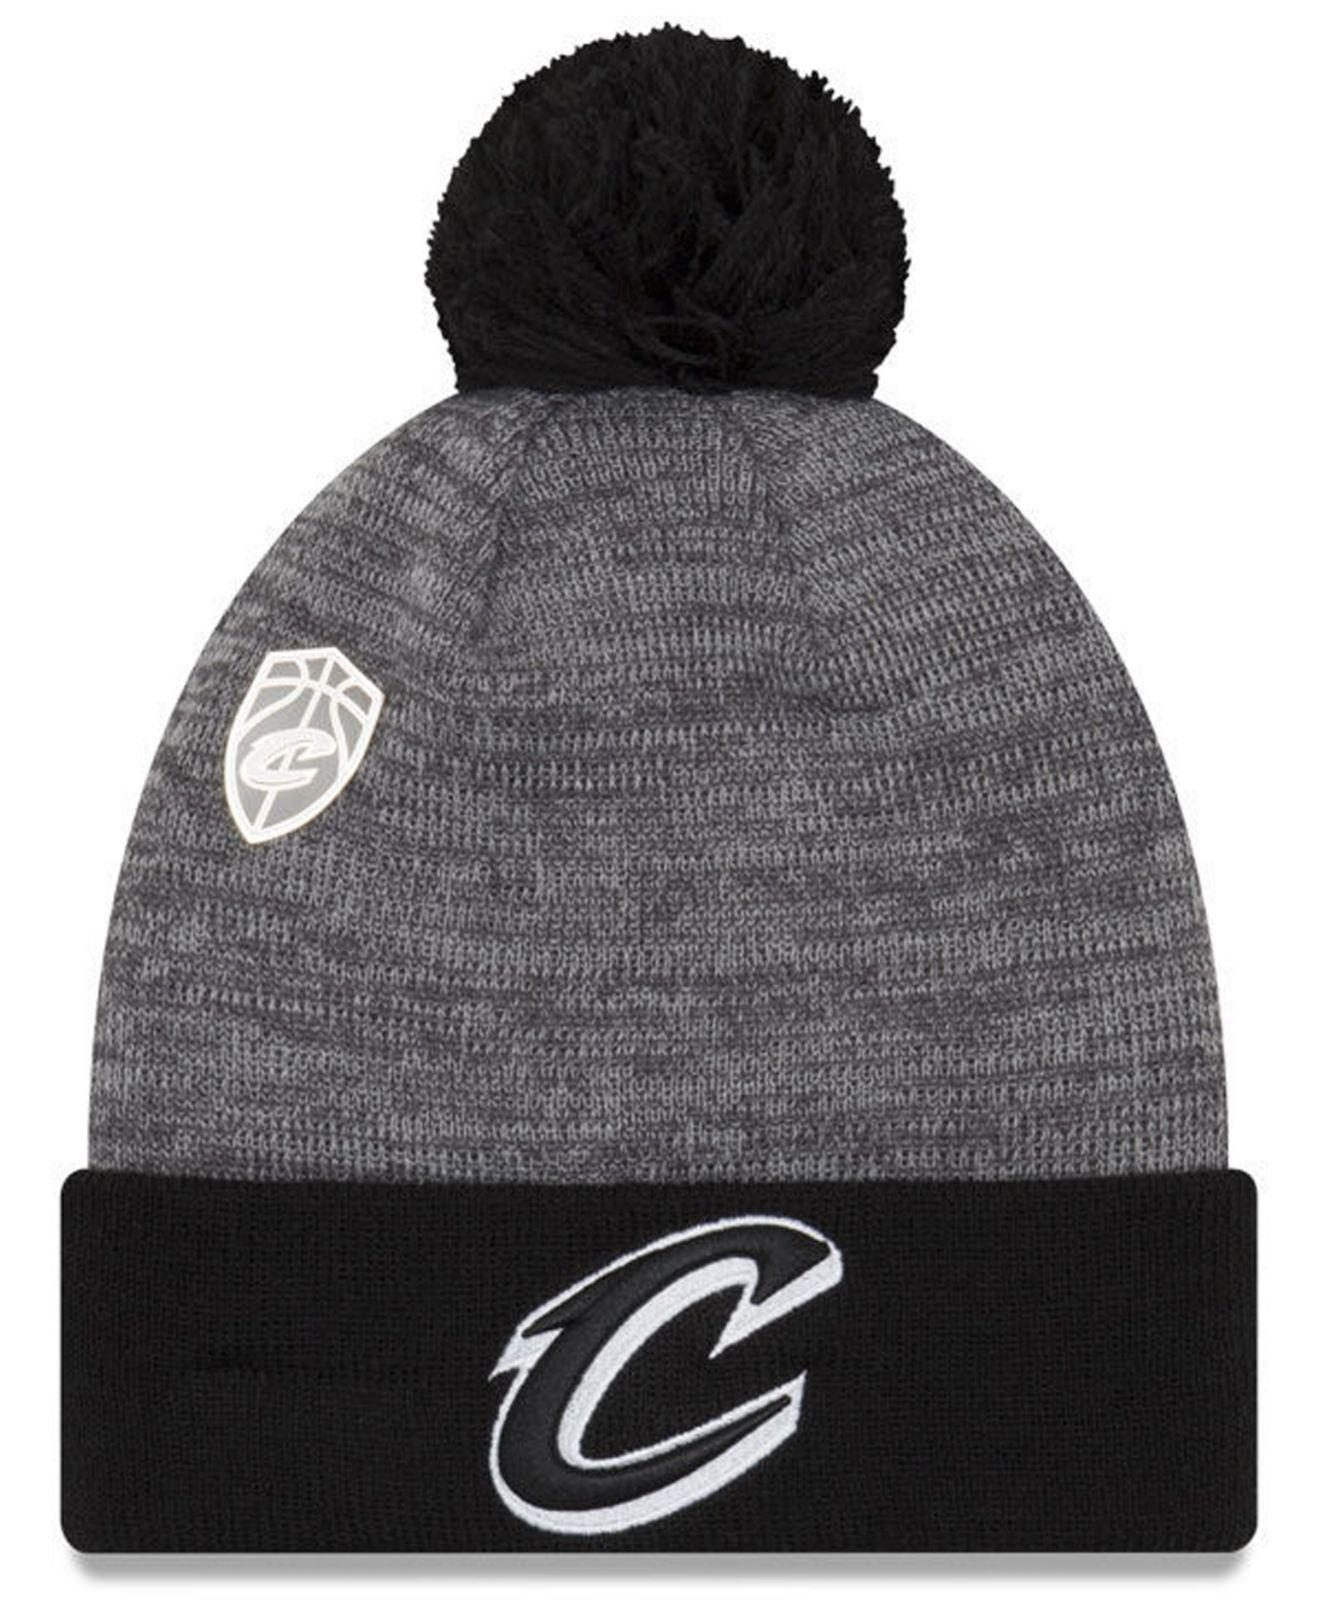 a82cd7f09b2 where to buy lyst ktz pin pom knit hat in black for men 1f347 a7d71